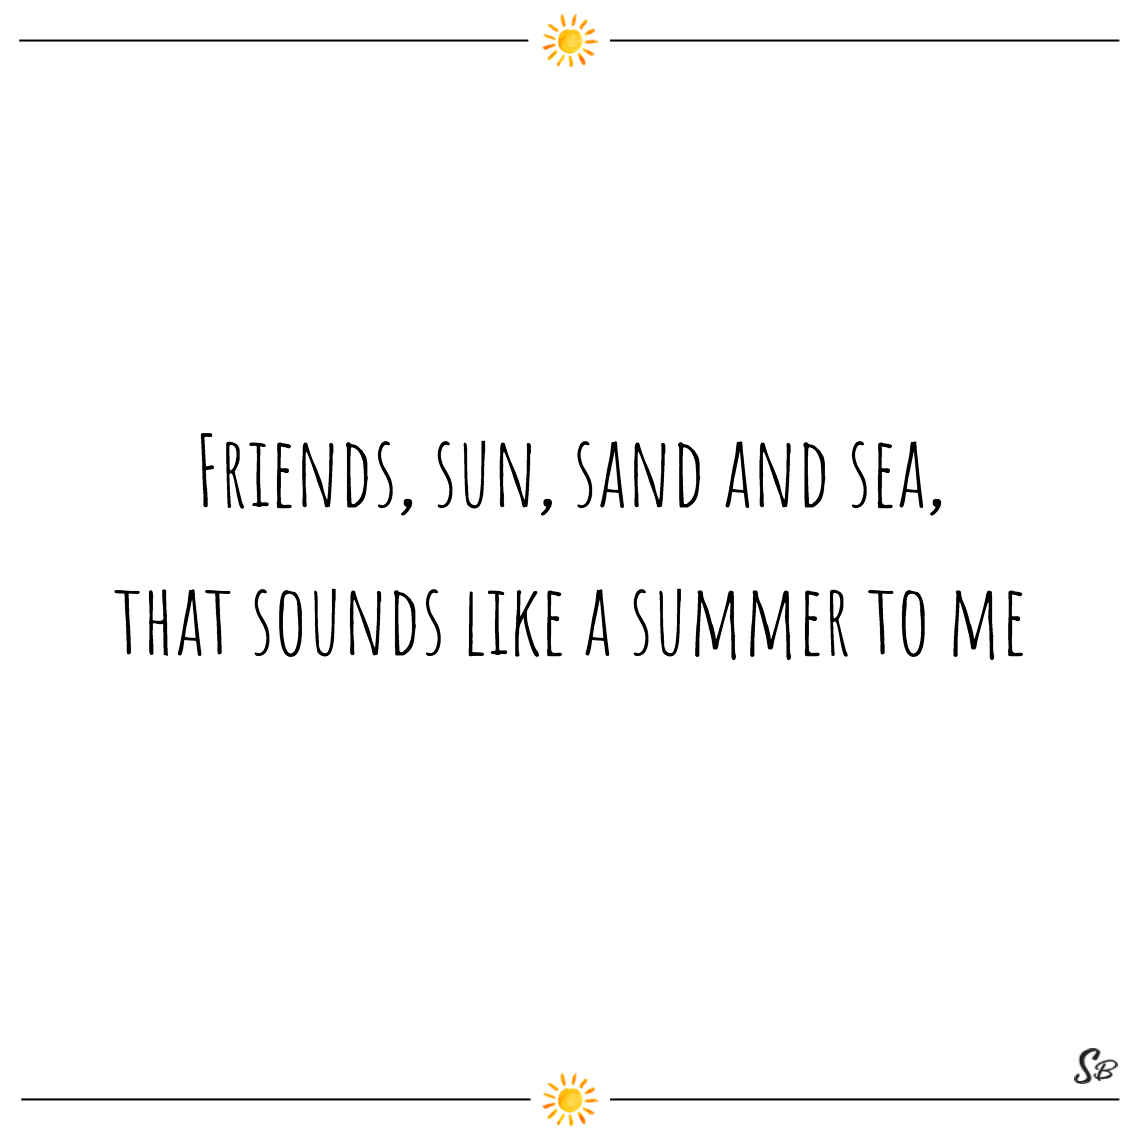 Friends, sun, sand and sea, that sounds like a summer to me